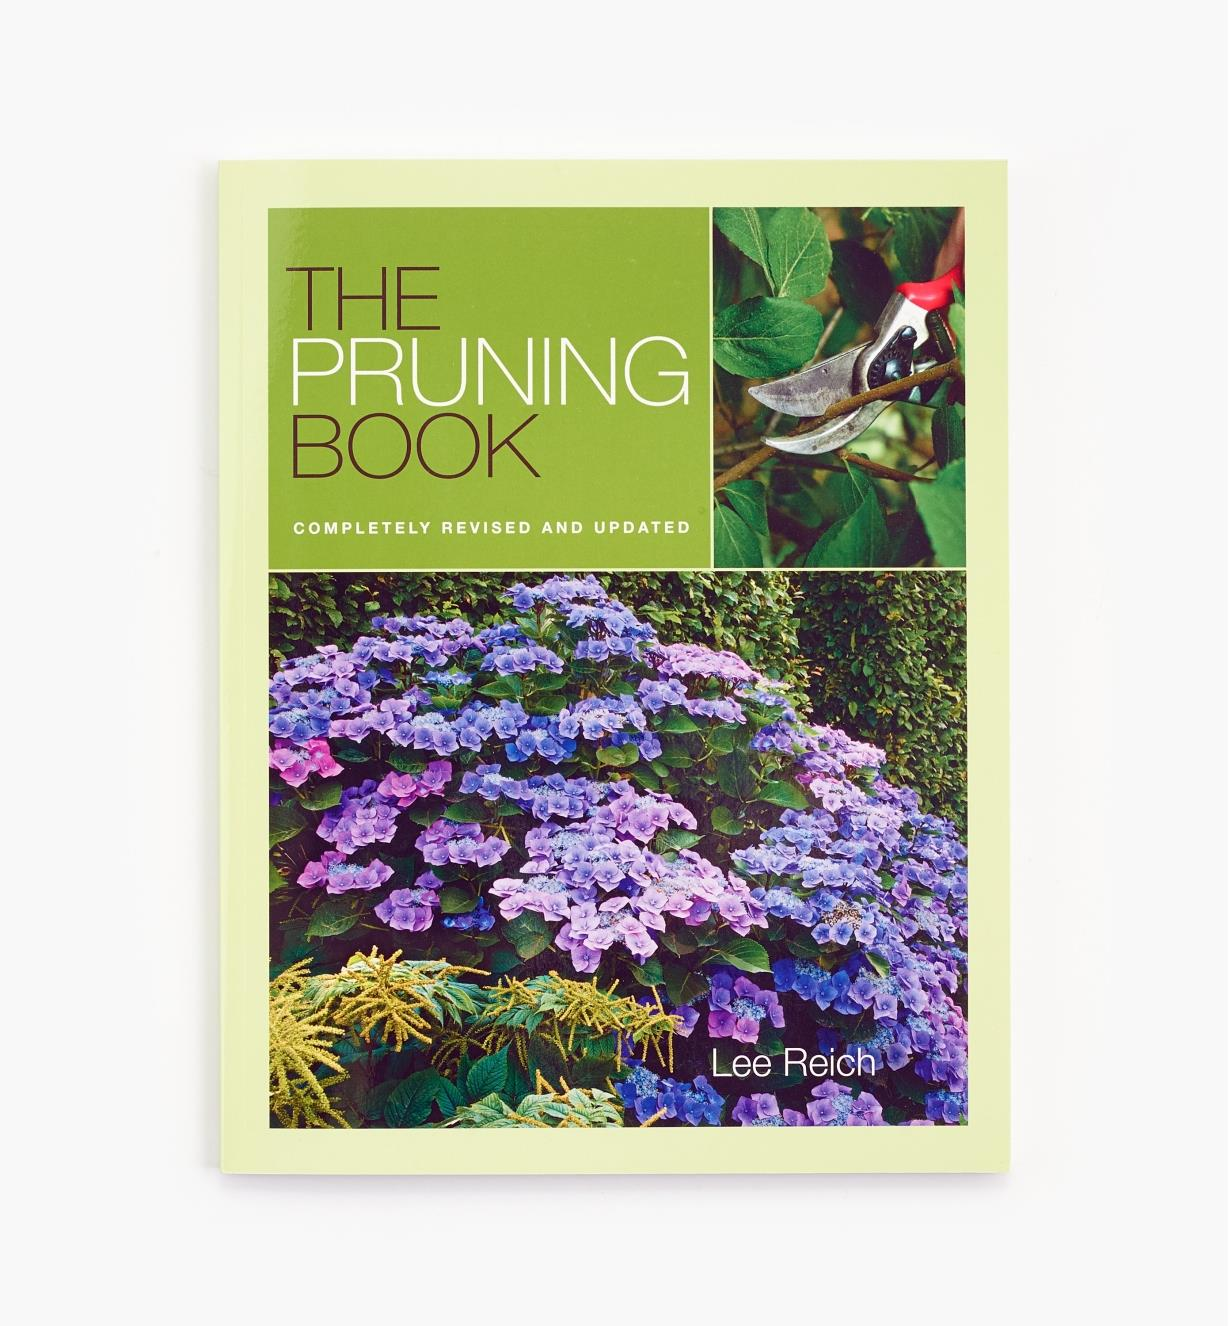 LA837 - The Pruning Book